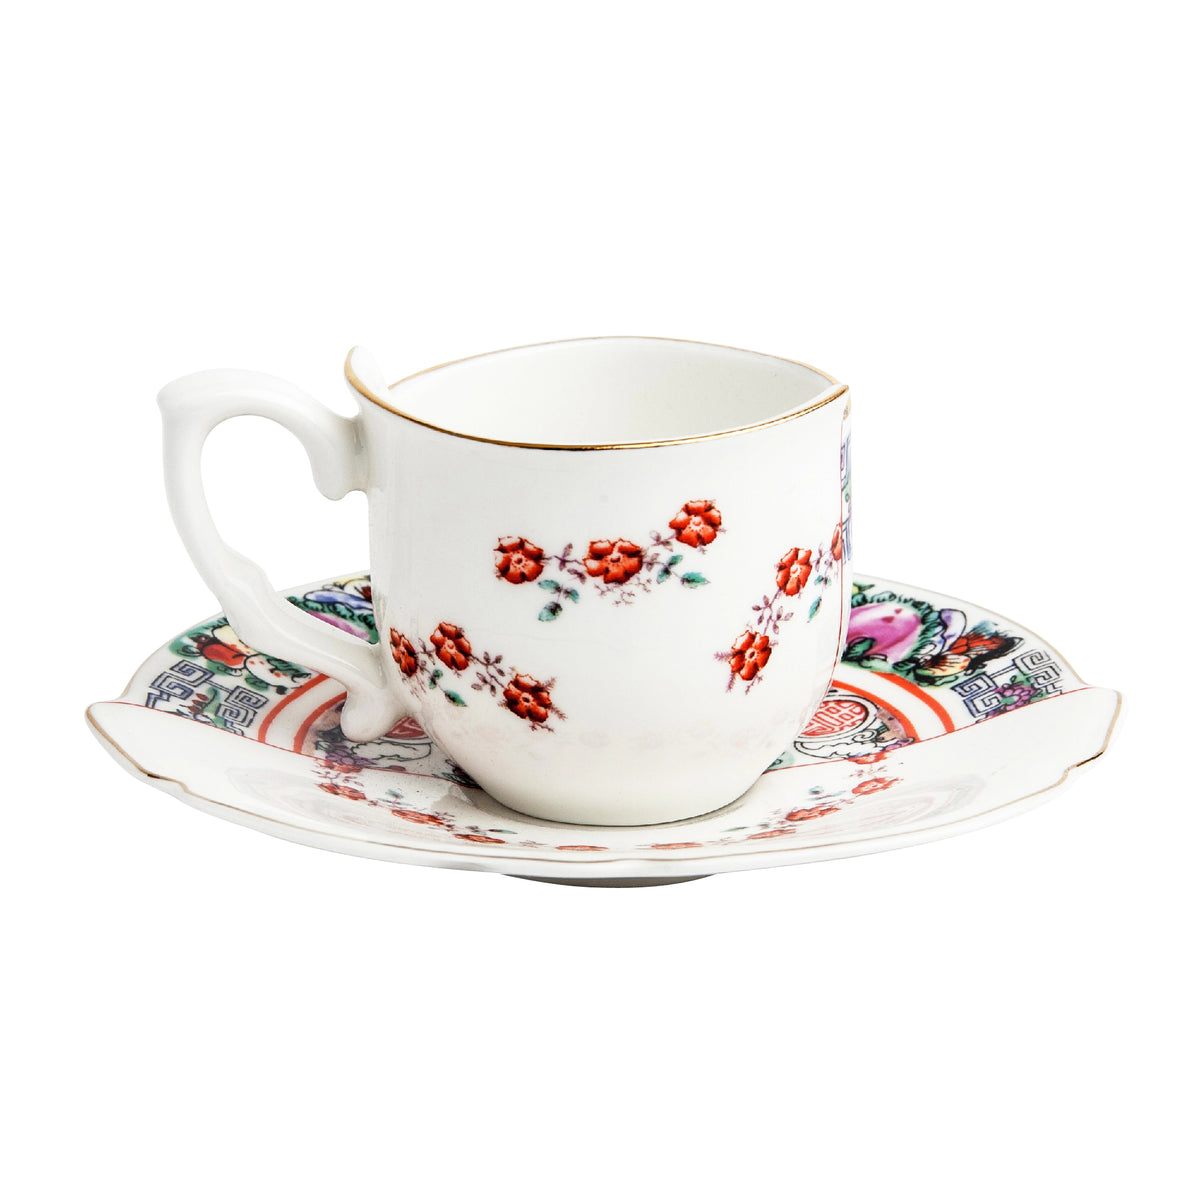 Hybrid Tamara Coffee Cup with Saucer